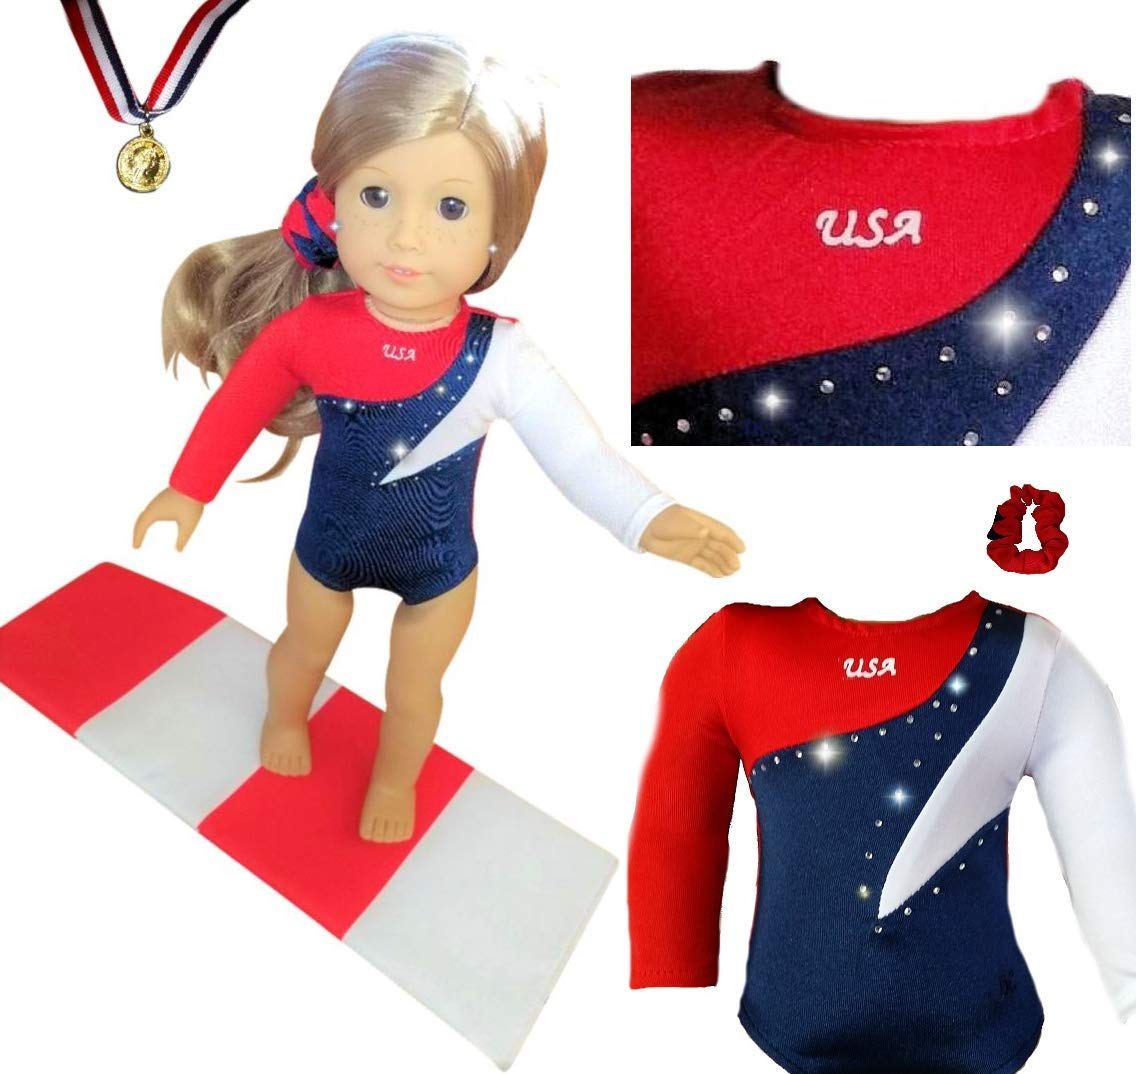 New QUALITY USA OLYMPIC GYMNASTICS DANCE LEOTARD with Rhinestones Set - Fits American Girl 18 inch Doll Clothes Lot Tammy Lee Designs